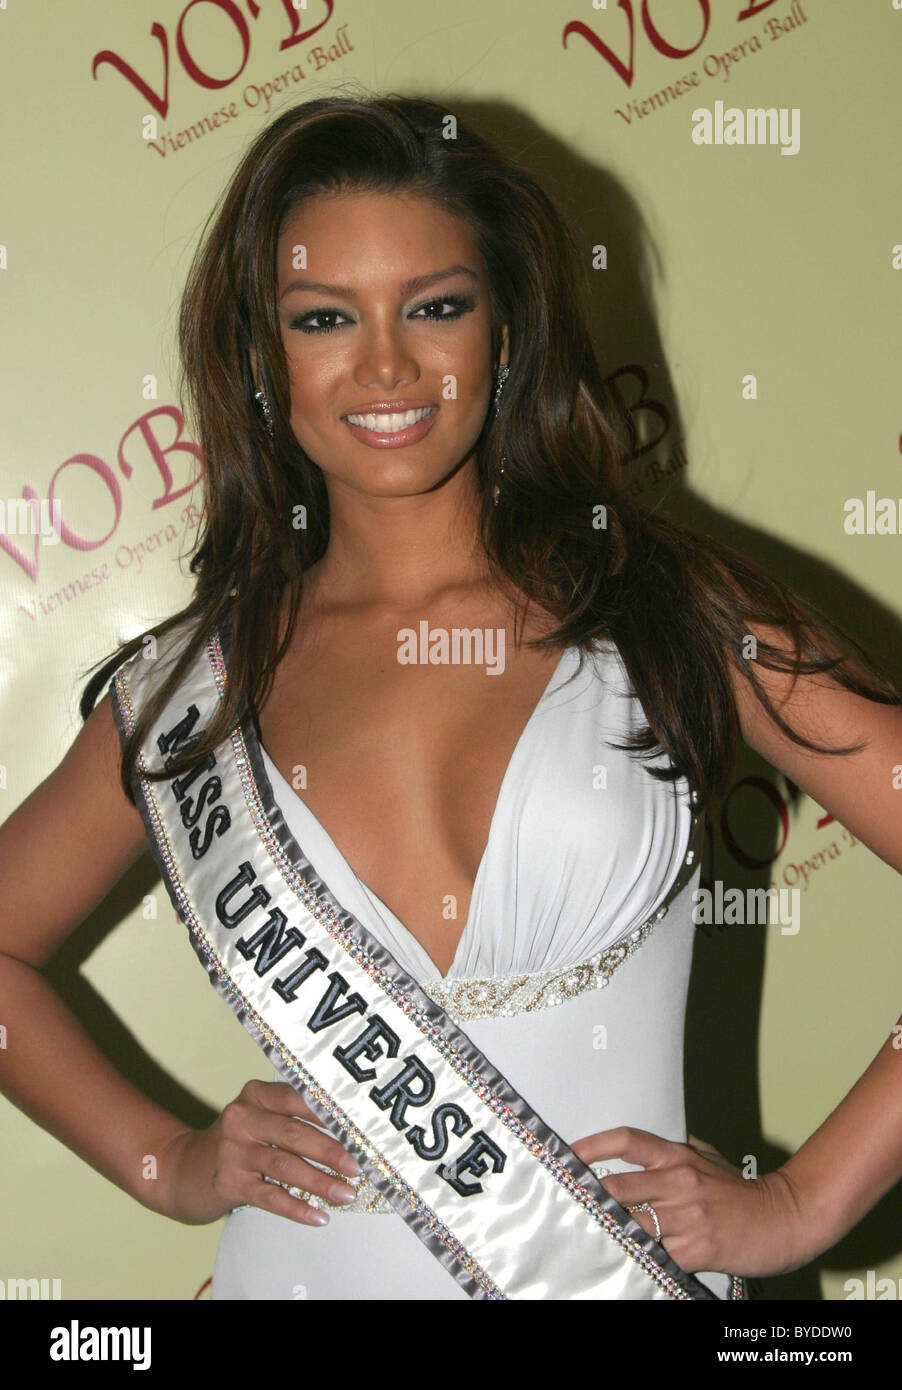 Miss Universe Zuleyka Rivera Stock Photos & Miss Universe Zuleyka ...